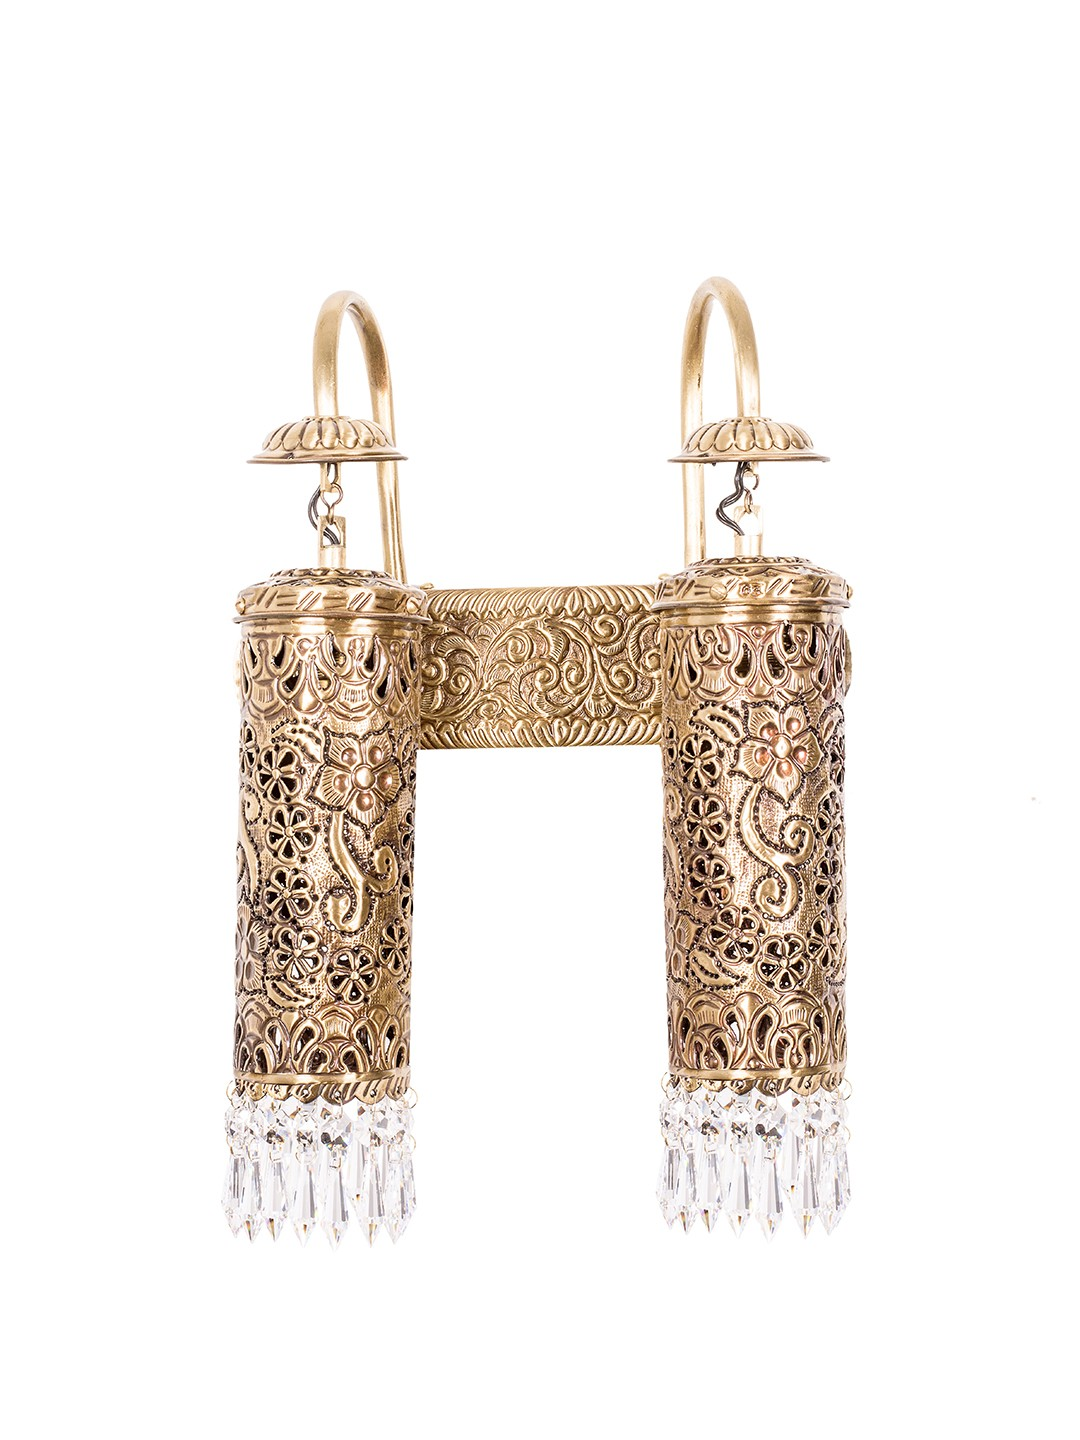 Hand Carved Brass & Crystal Mini Cylinder Wall Sconce